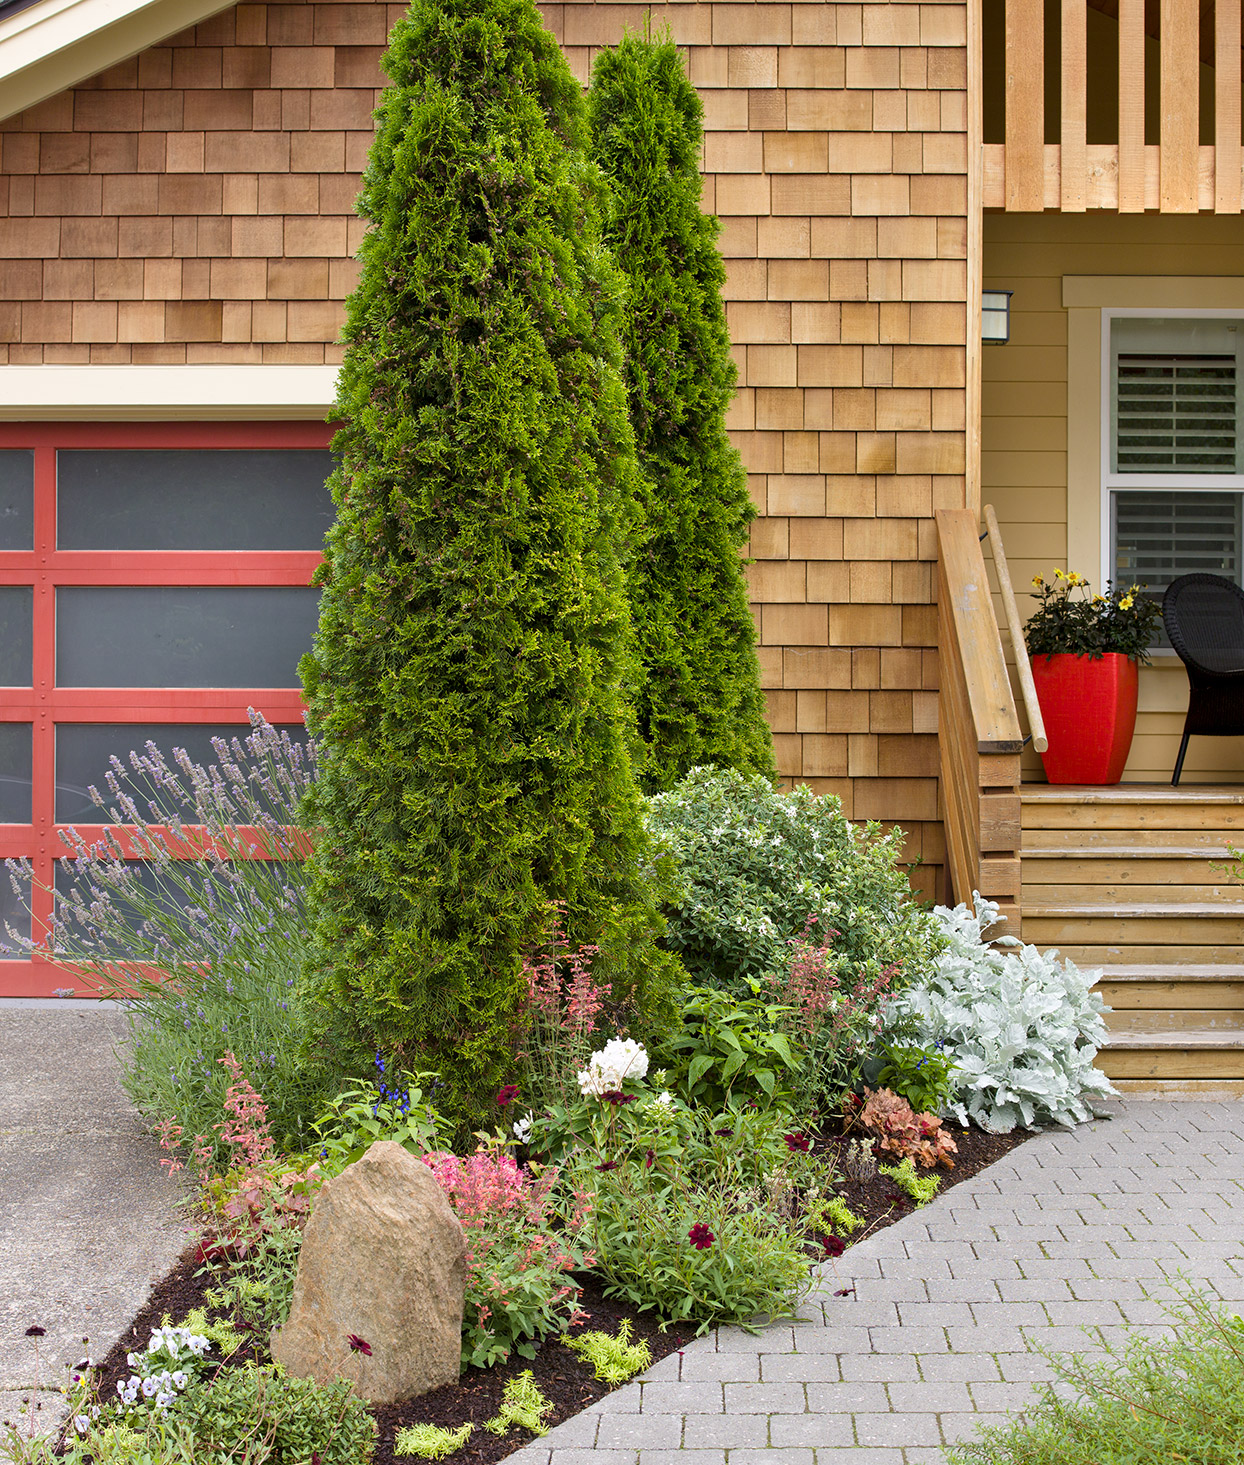 Fast-Growing Evergreen Trees to Quickly Transform Your Landscape